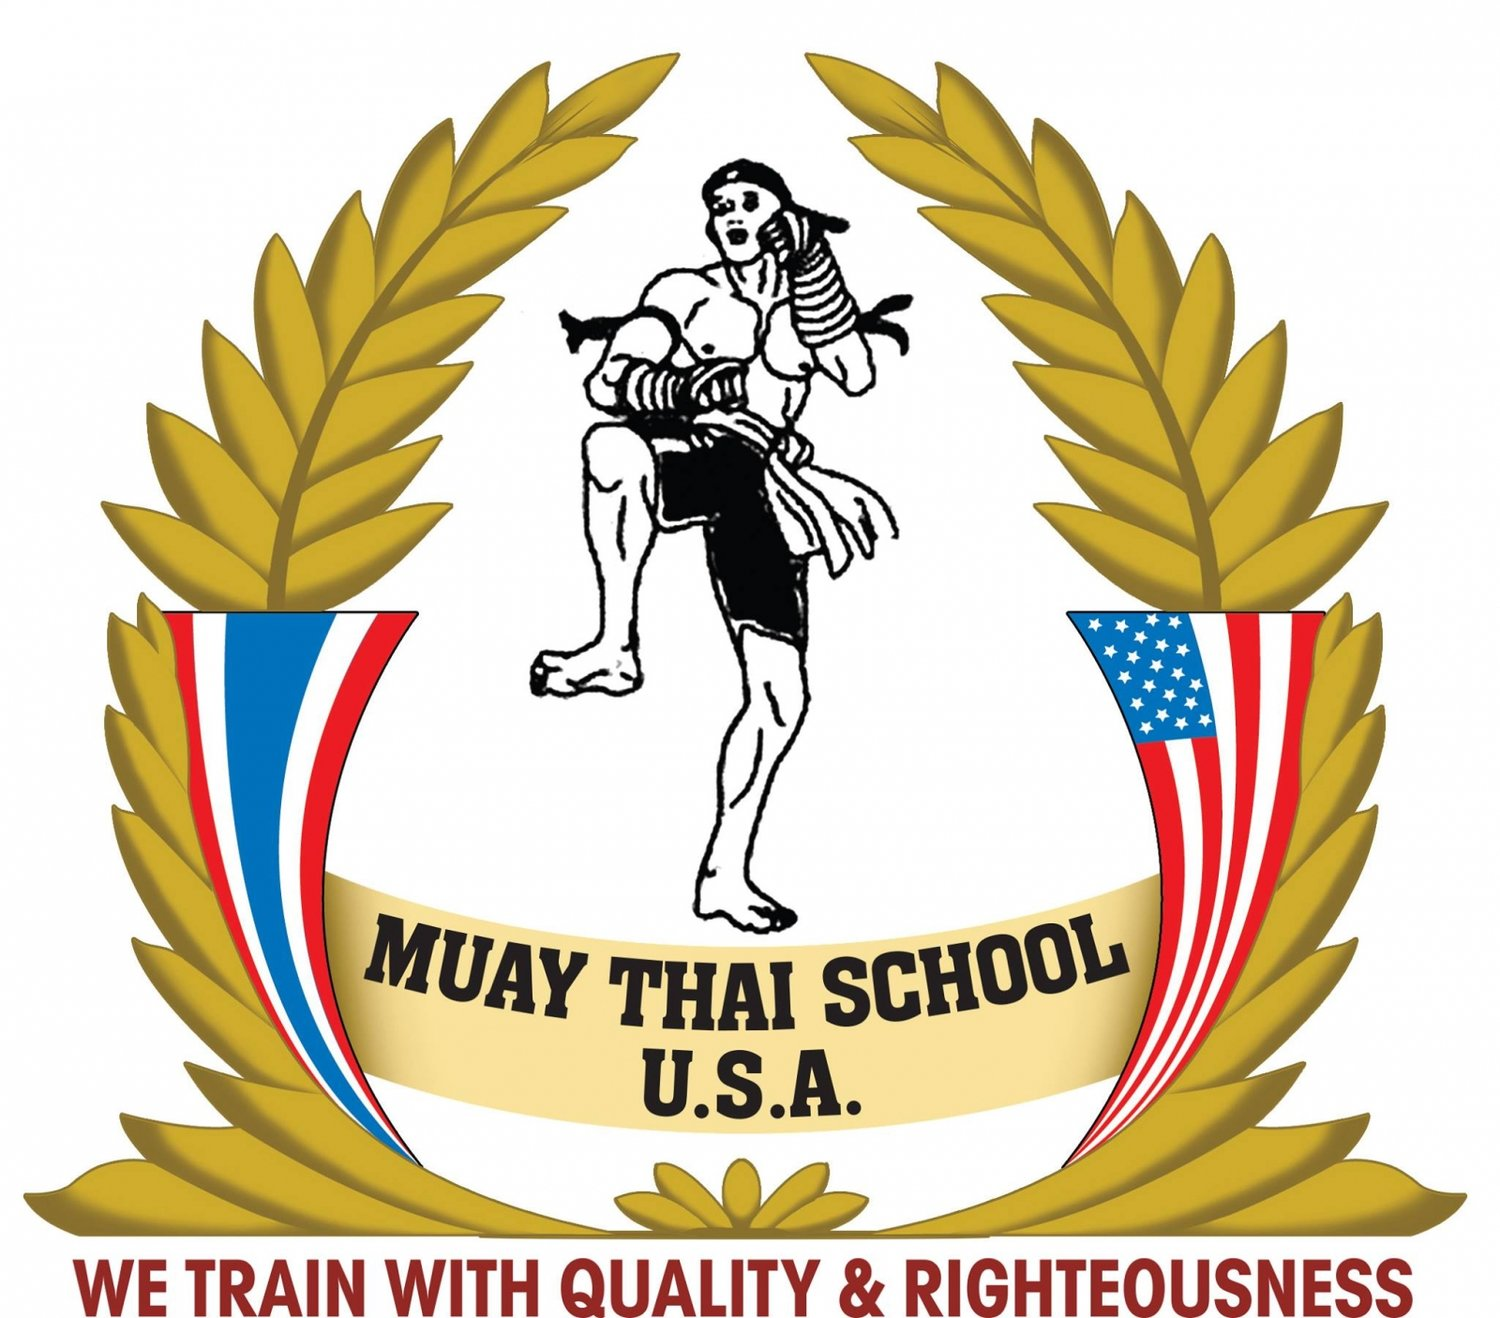 Muay Thai School USA